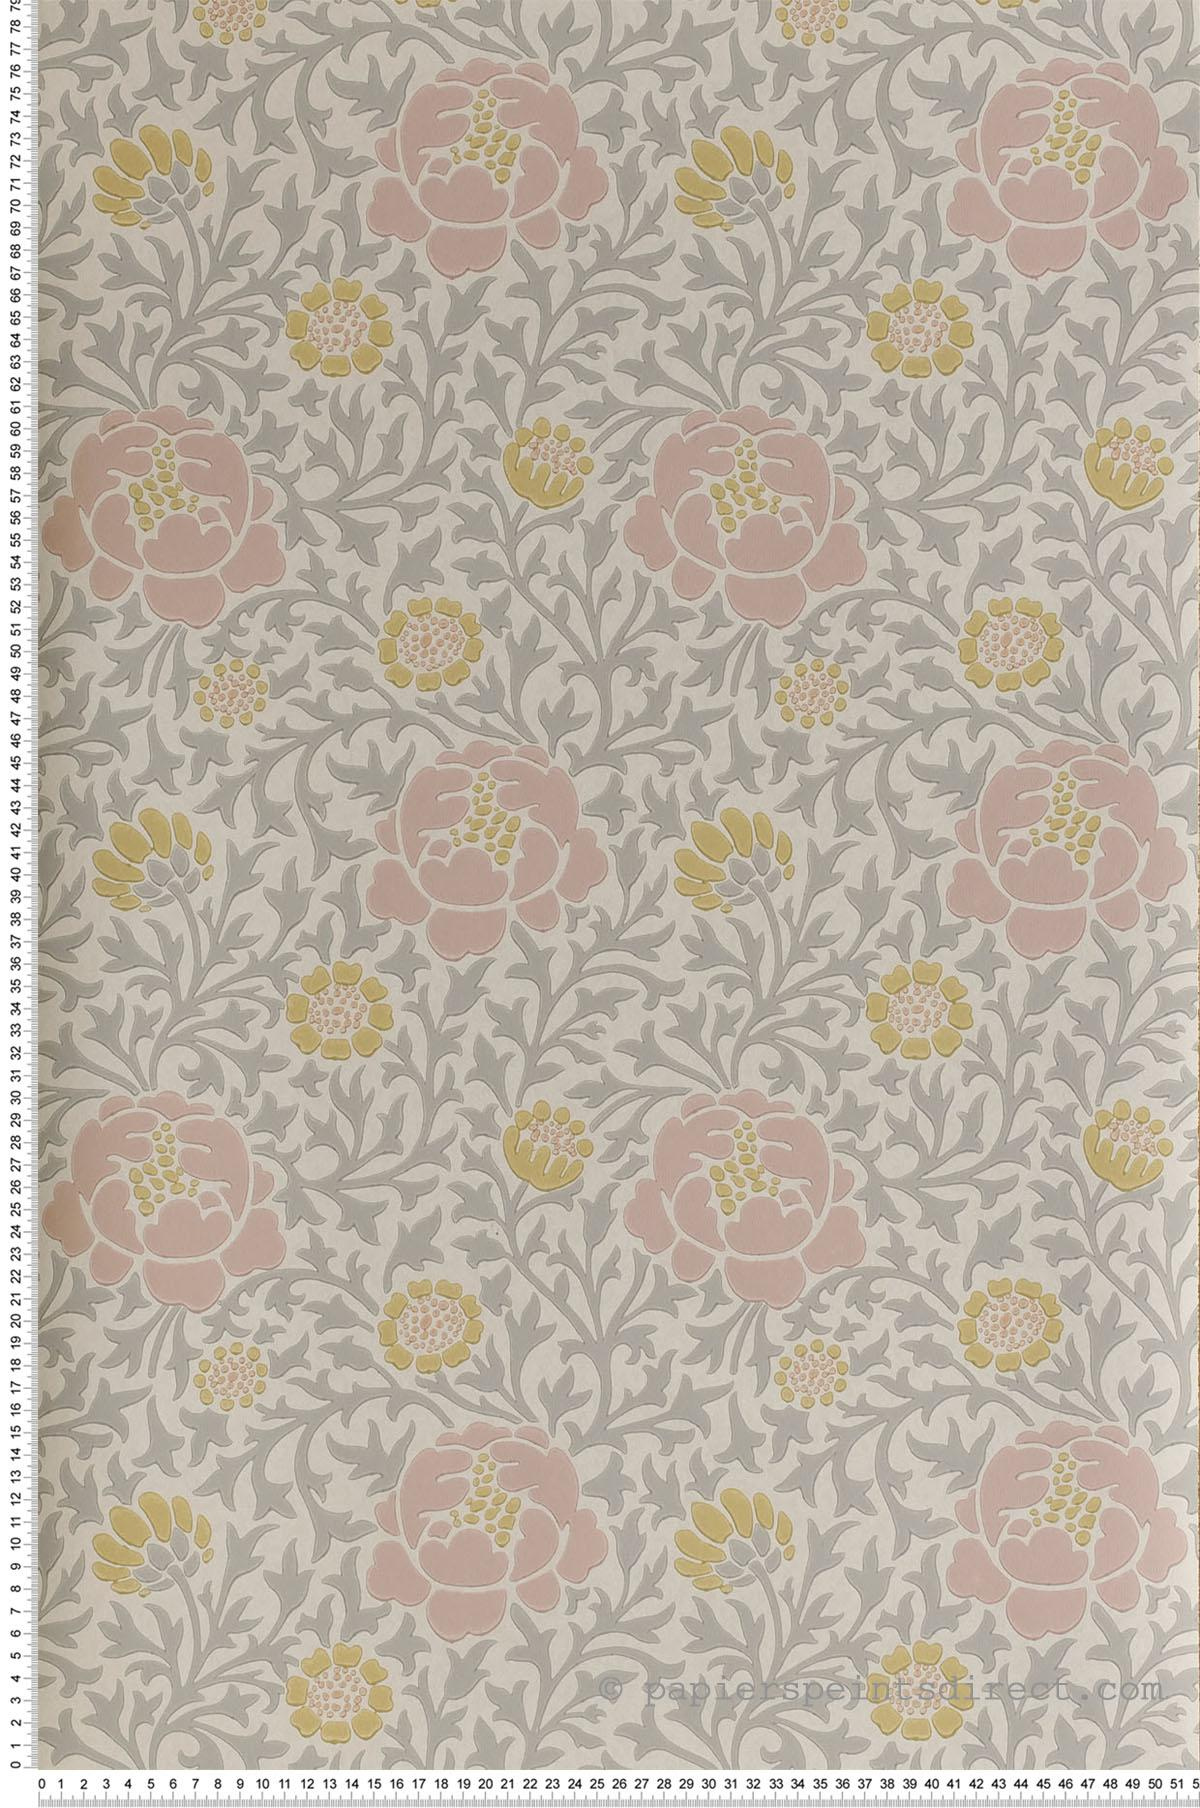 Papier peint Lansdowne Walk Nordic - Collection London Wallpapers V de Little Greene